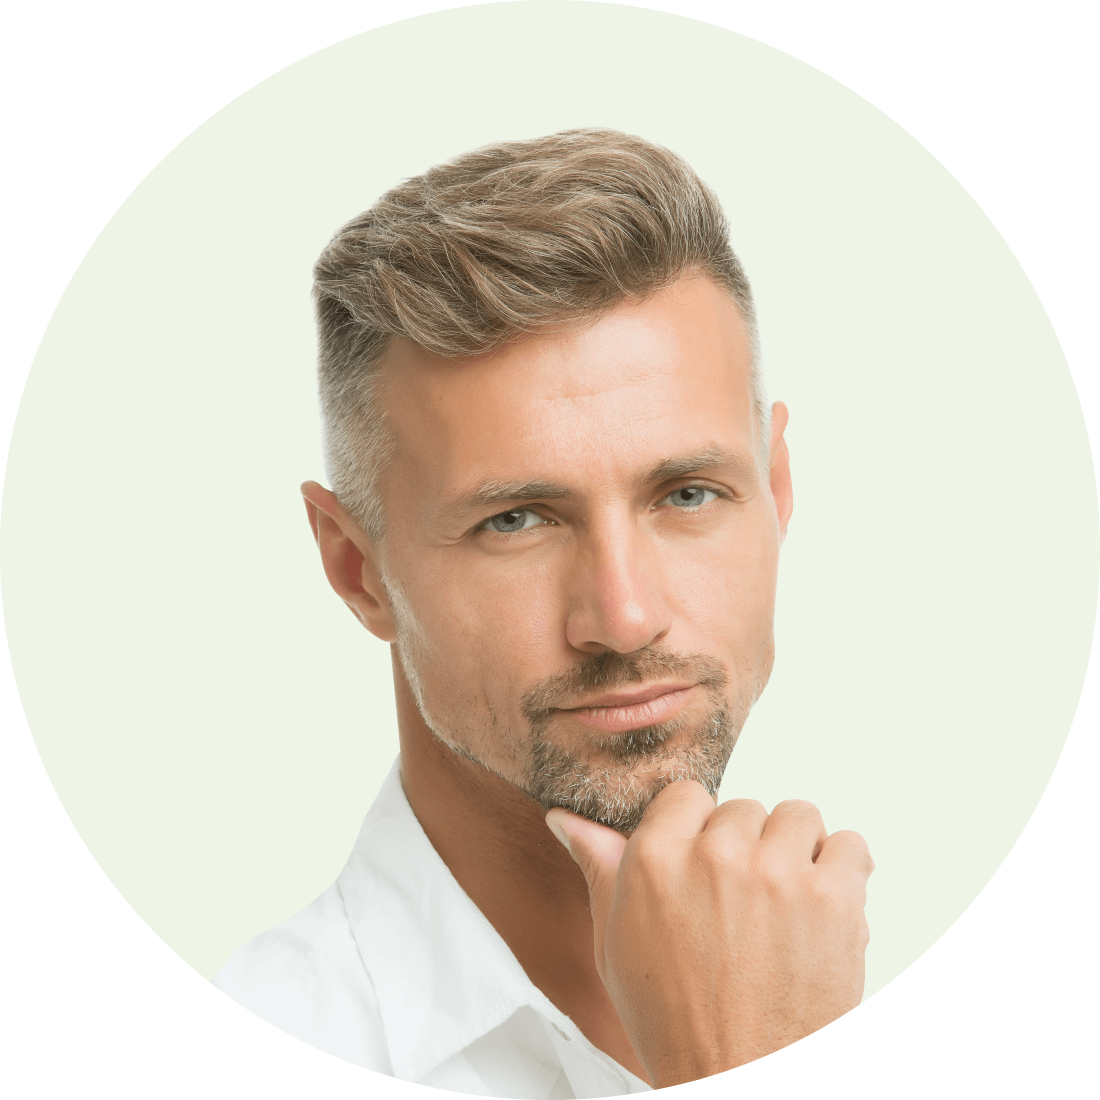 Why men choose Hair Transplantation?